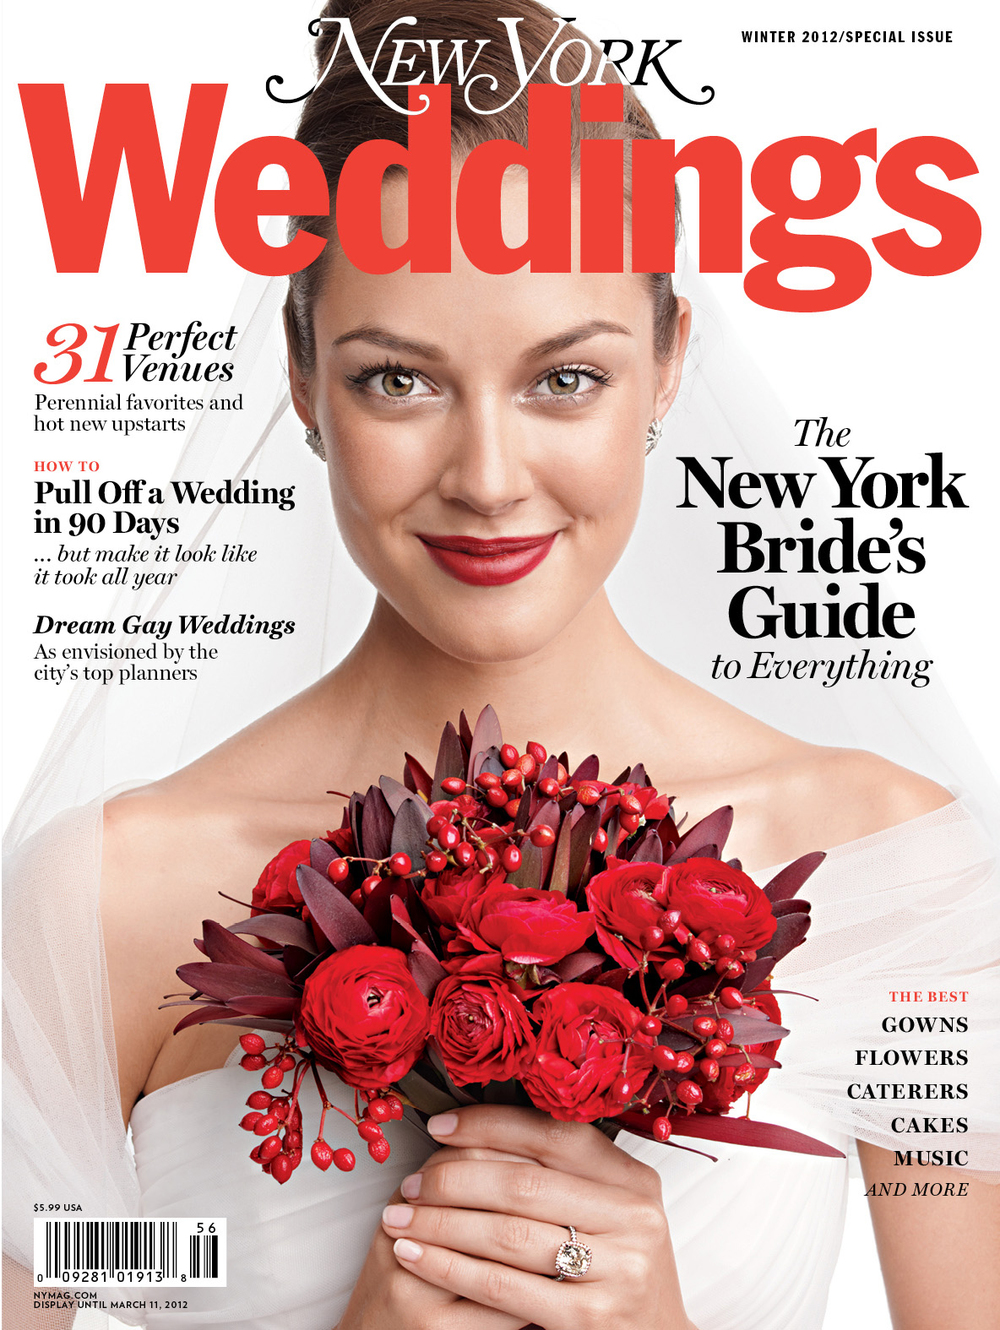 New York Weddings Magazine Winter 2012 Editorial List and Feature